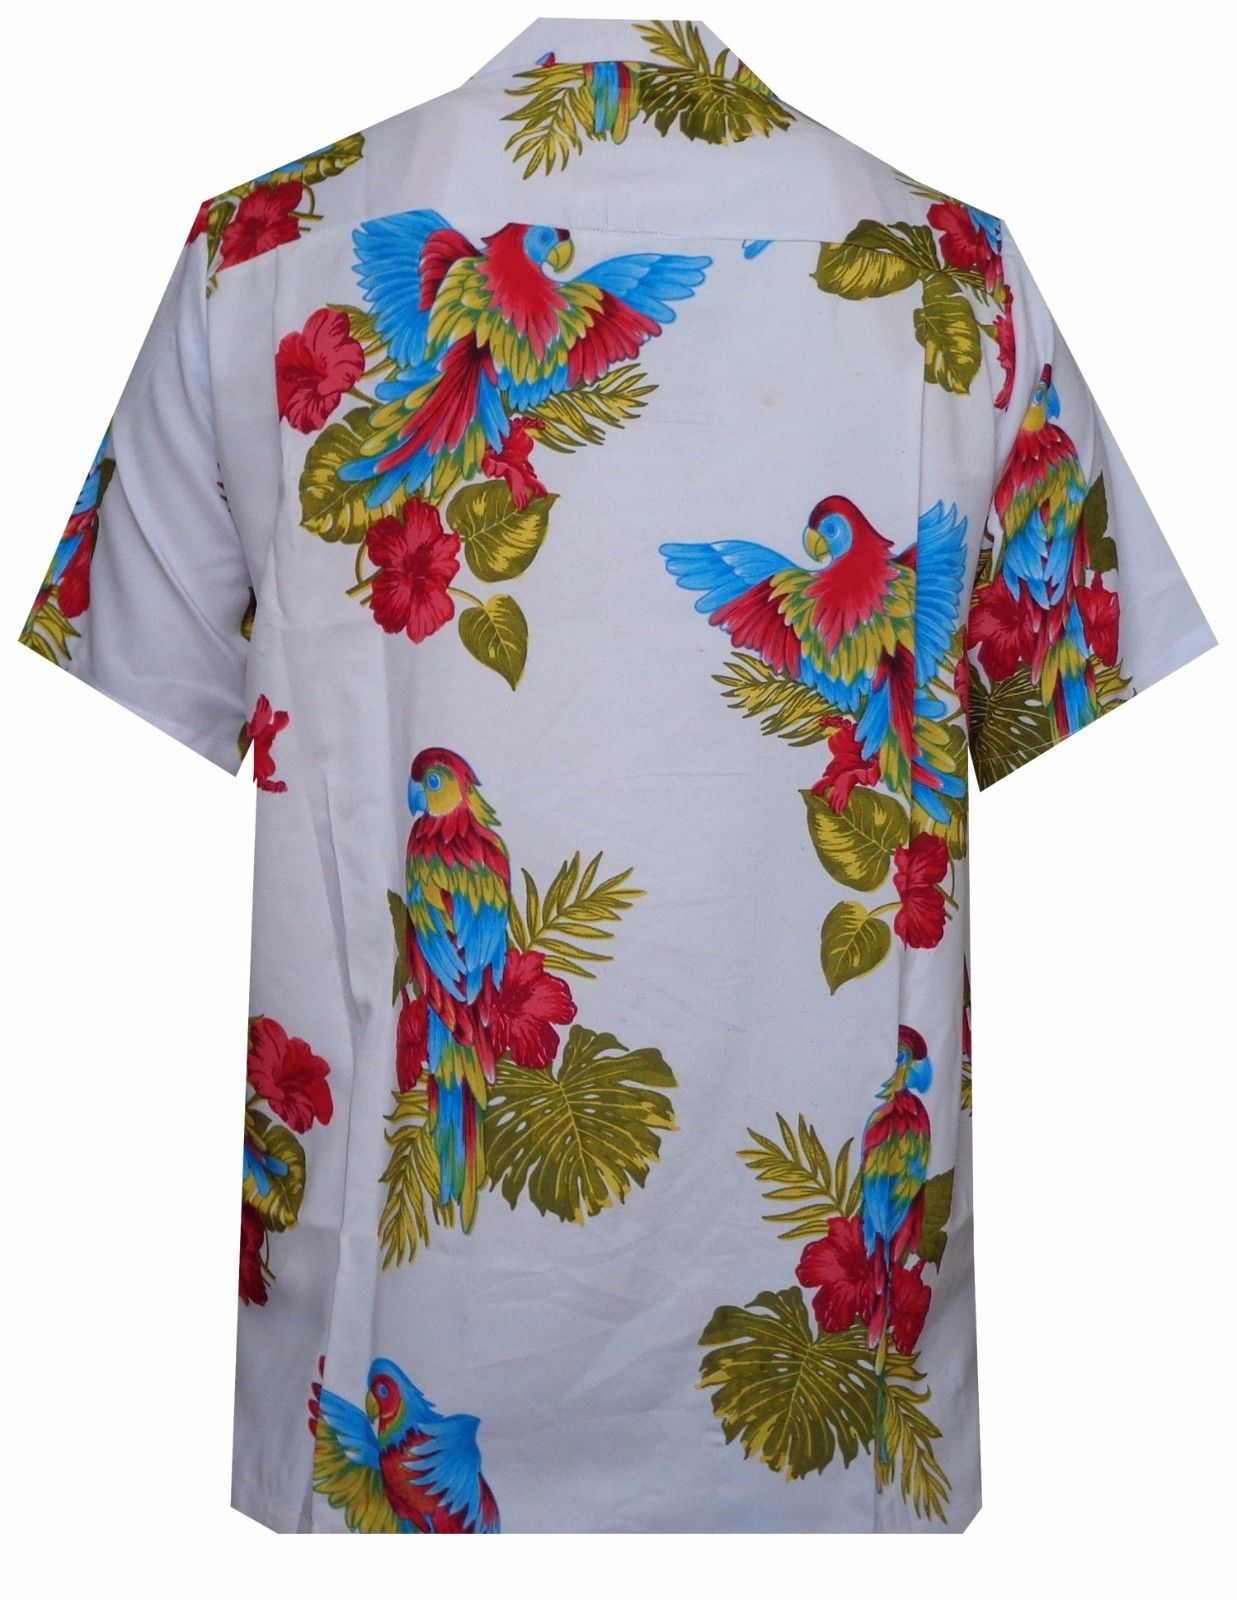 Hawaiian-Shirt-Mens-Parrot-Toucan-Print-Beach-Aloha-Party-Holiday-Camp thumbnail 16